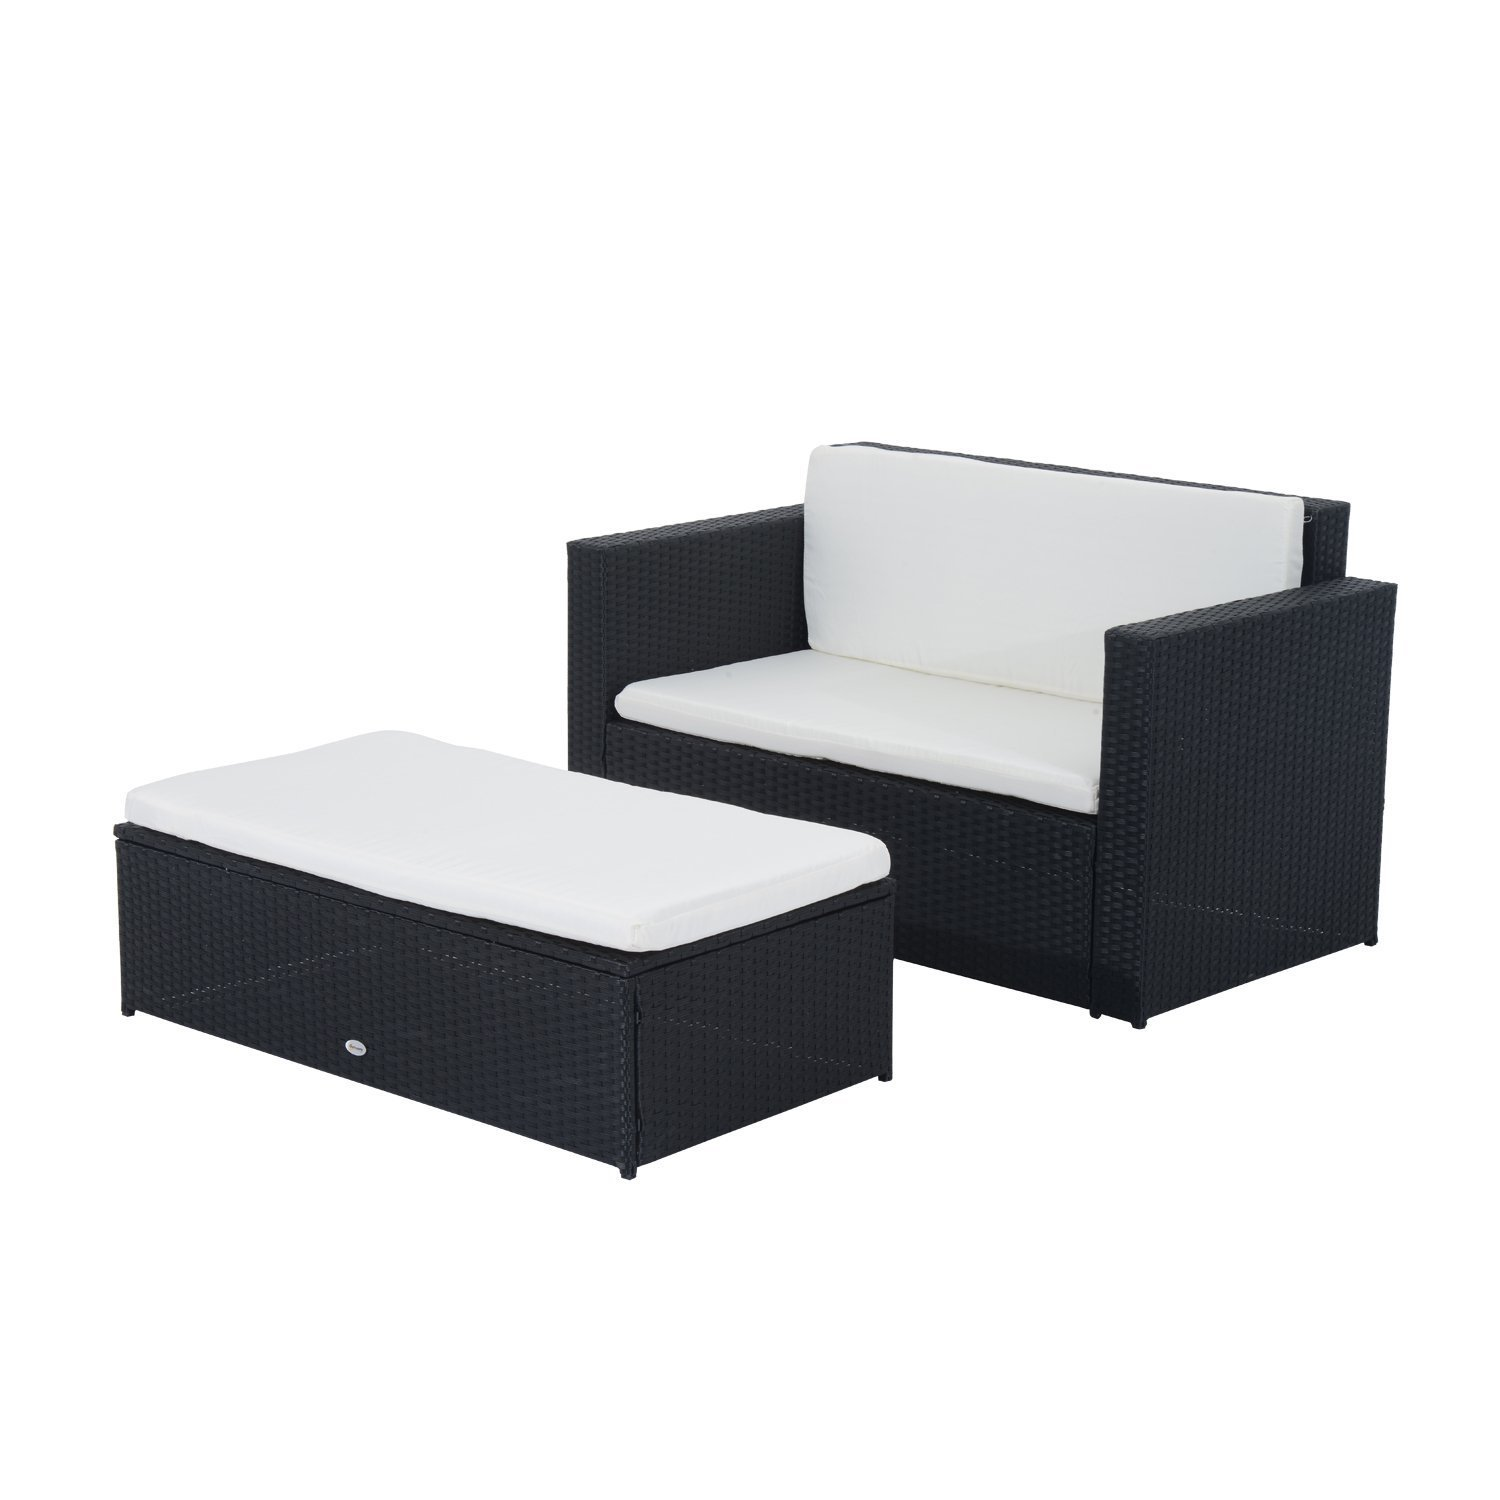 outsunny gartenm bel polyrattan gartenset sitzgruppe doppelsofa inklusiv kissen schwarz g nstig. Black Bedroom Furniture Sets. Home Design Ideas